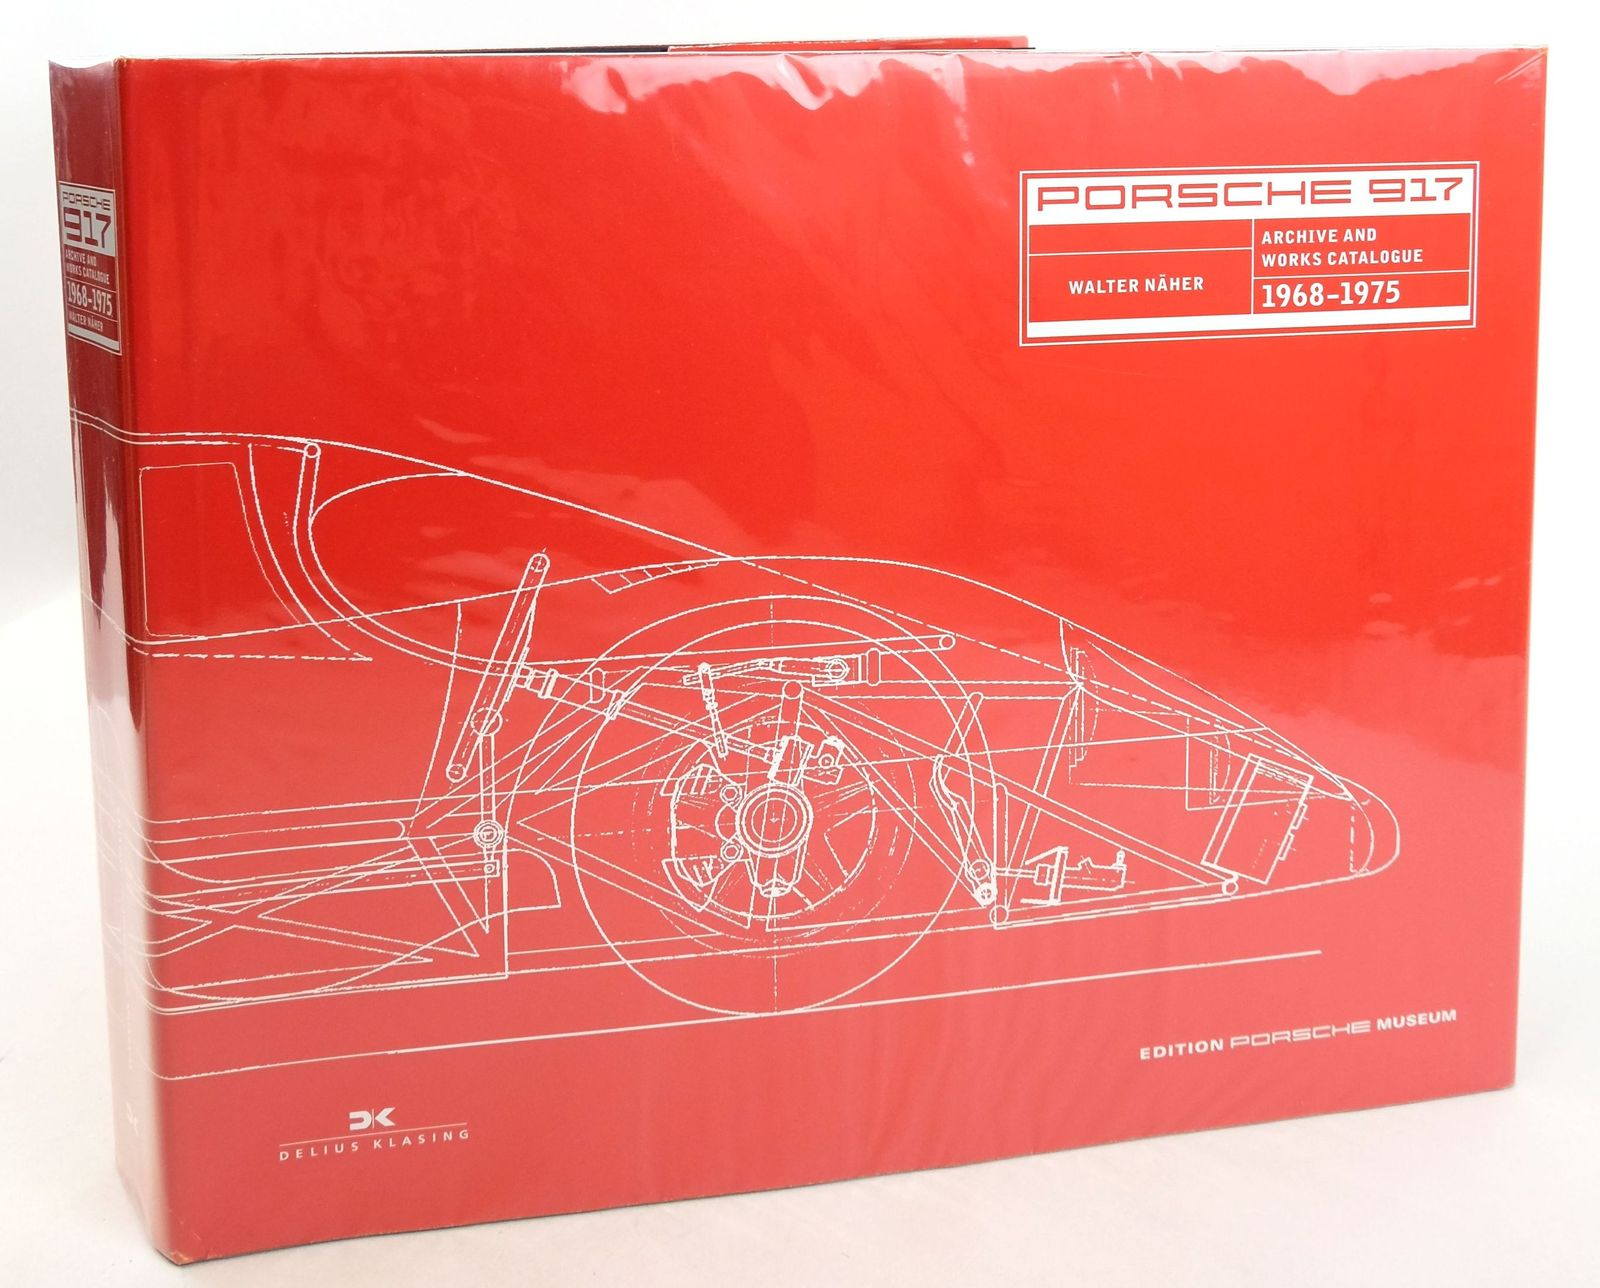 Photo of PORSCHE 917 ARCHIVE AND WORKS CATALOGUE 1968-1975